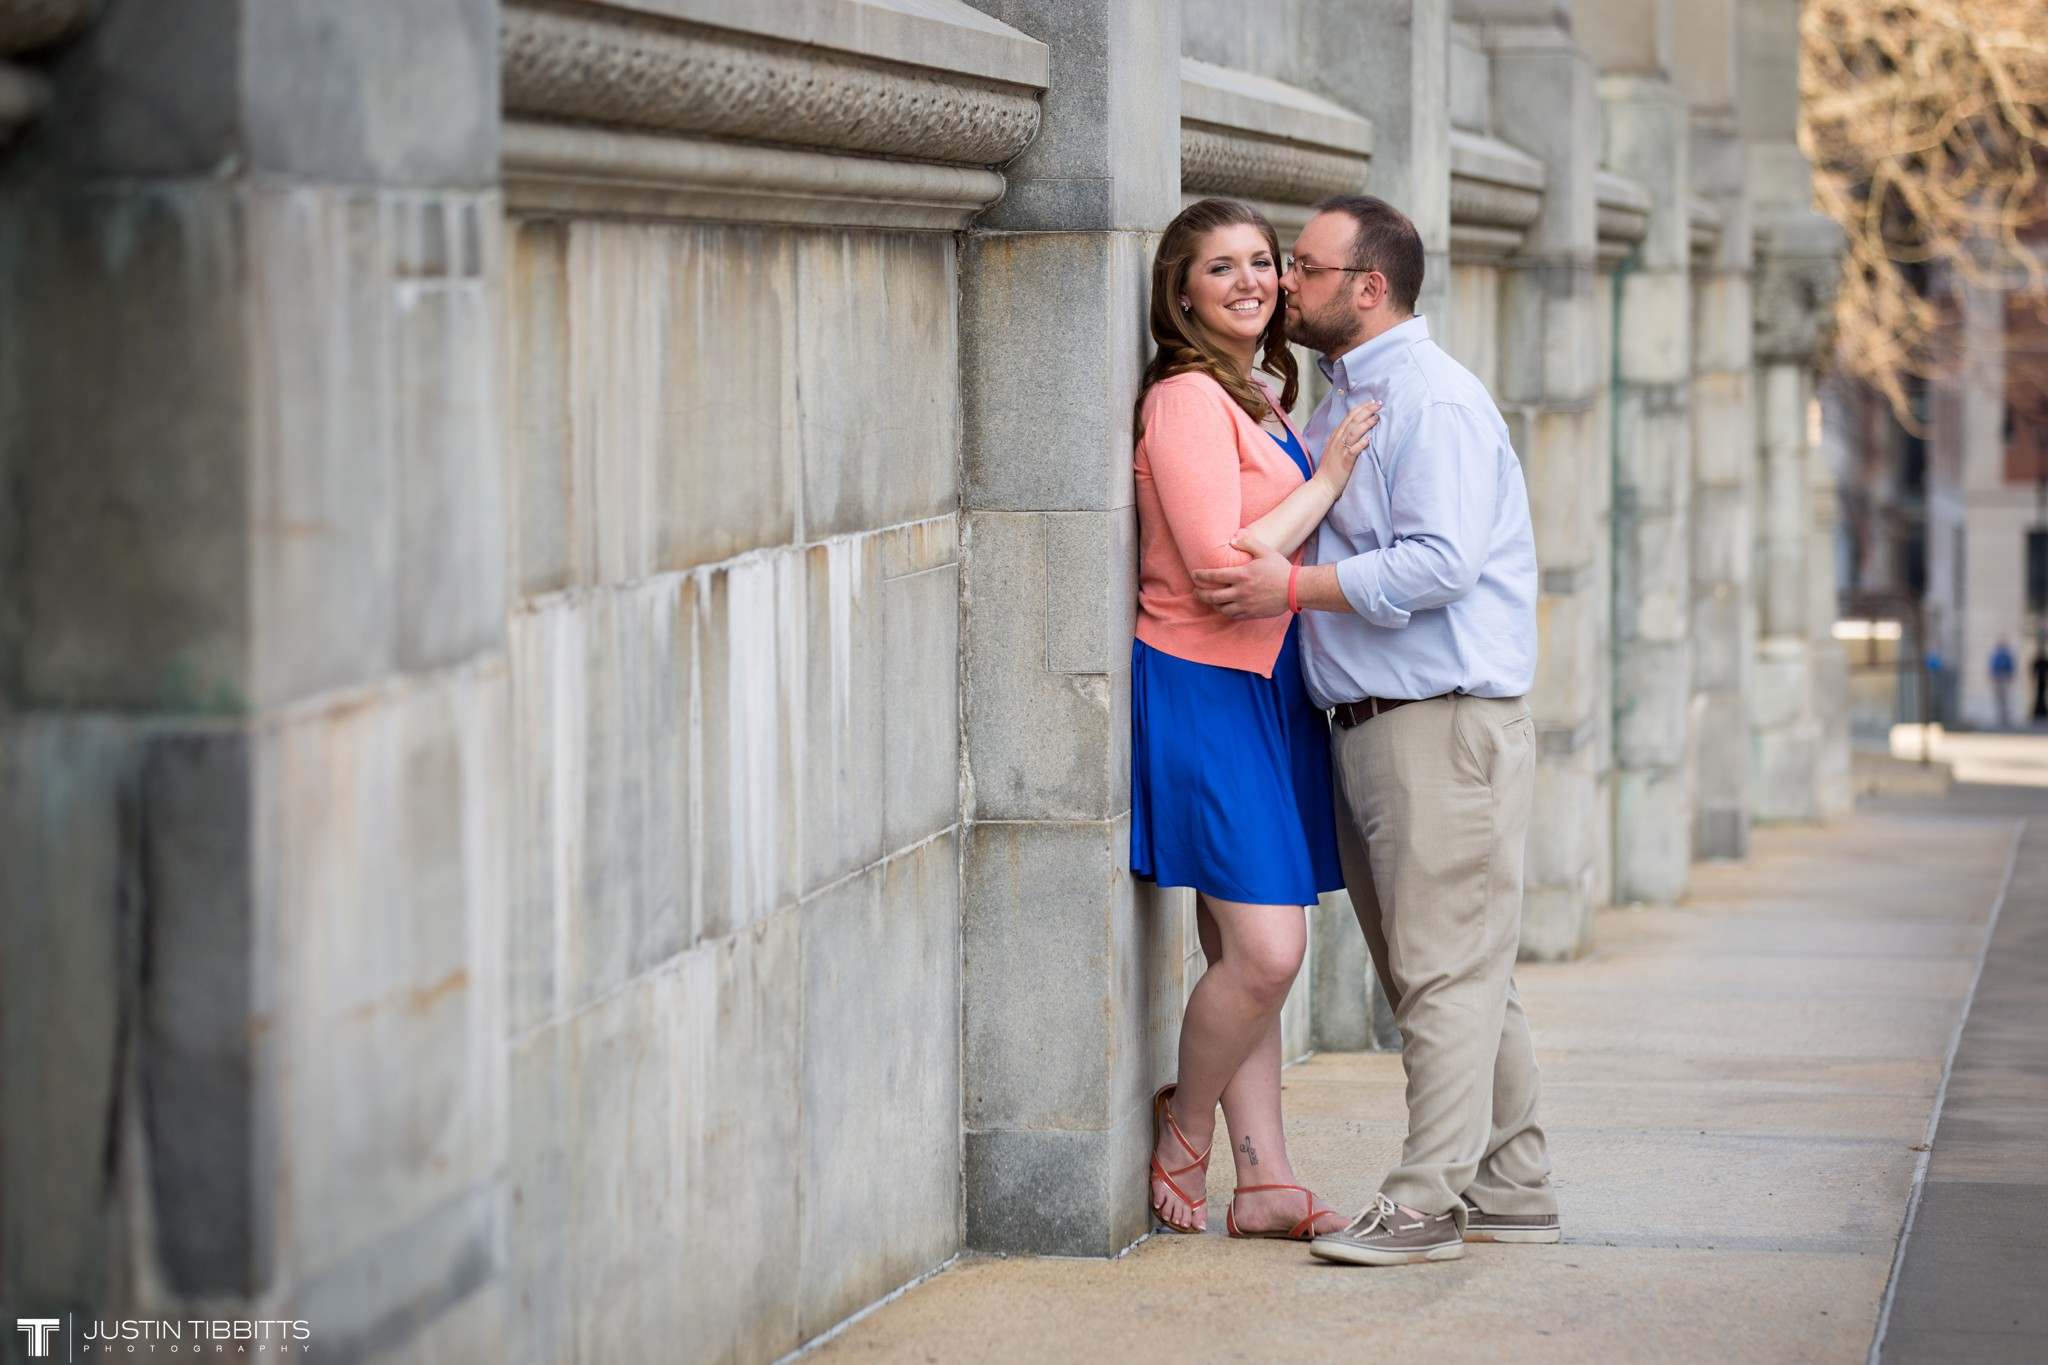 Justin Tibbitts Photography Sara and Erics Albany NY Engagement Photoshoot-44